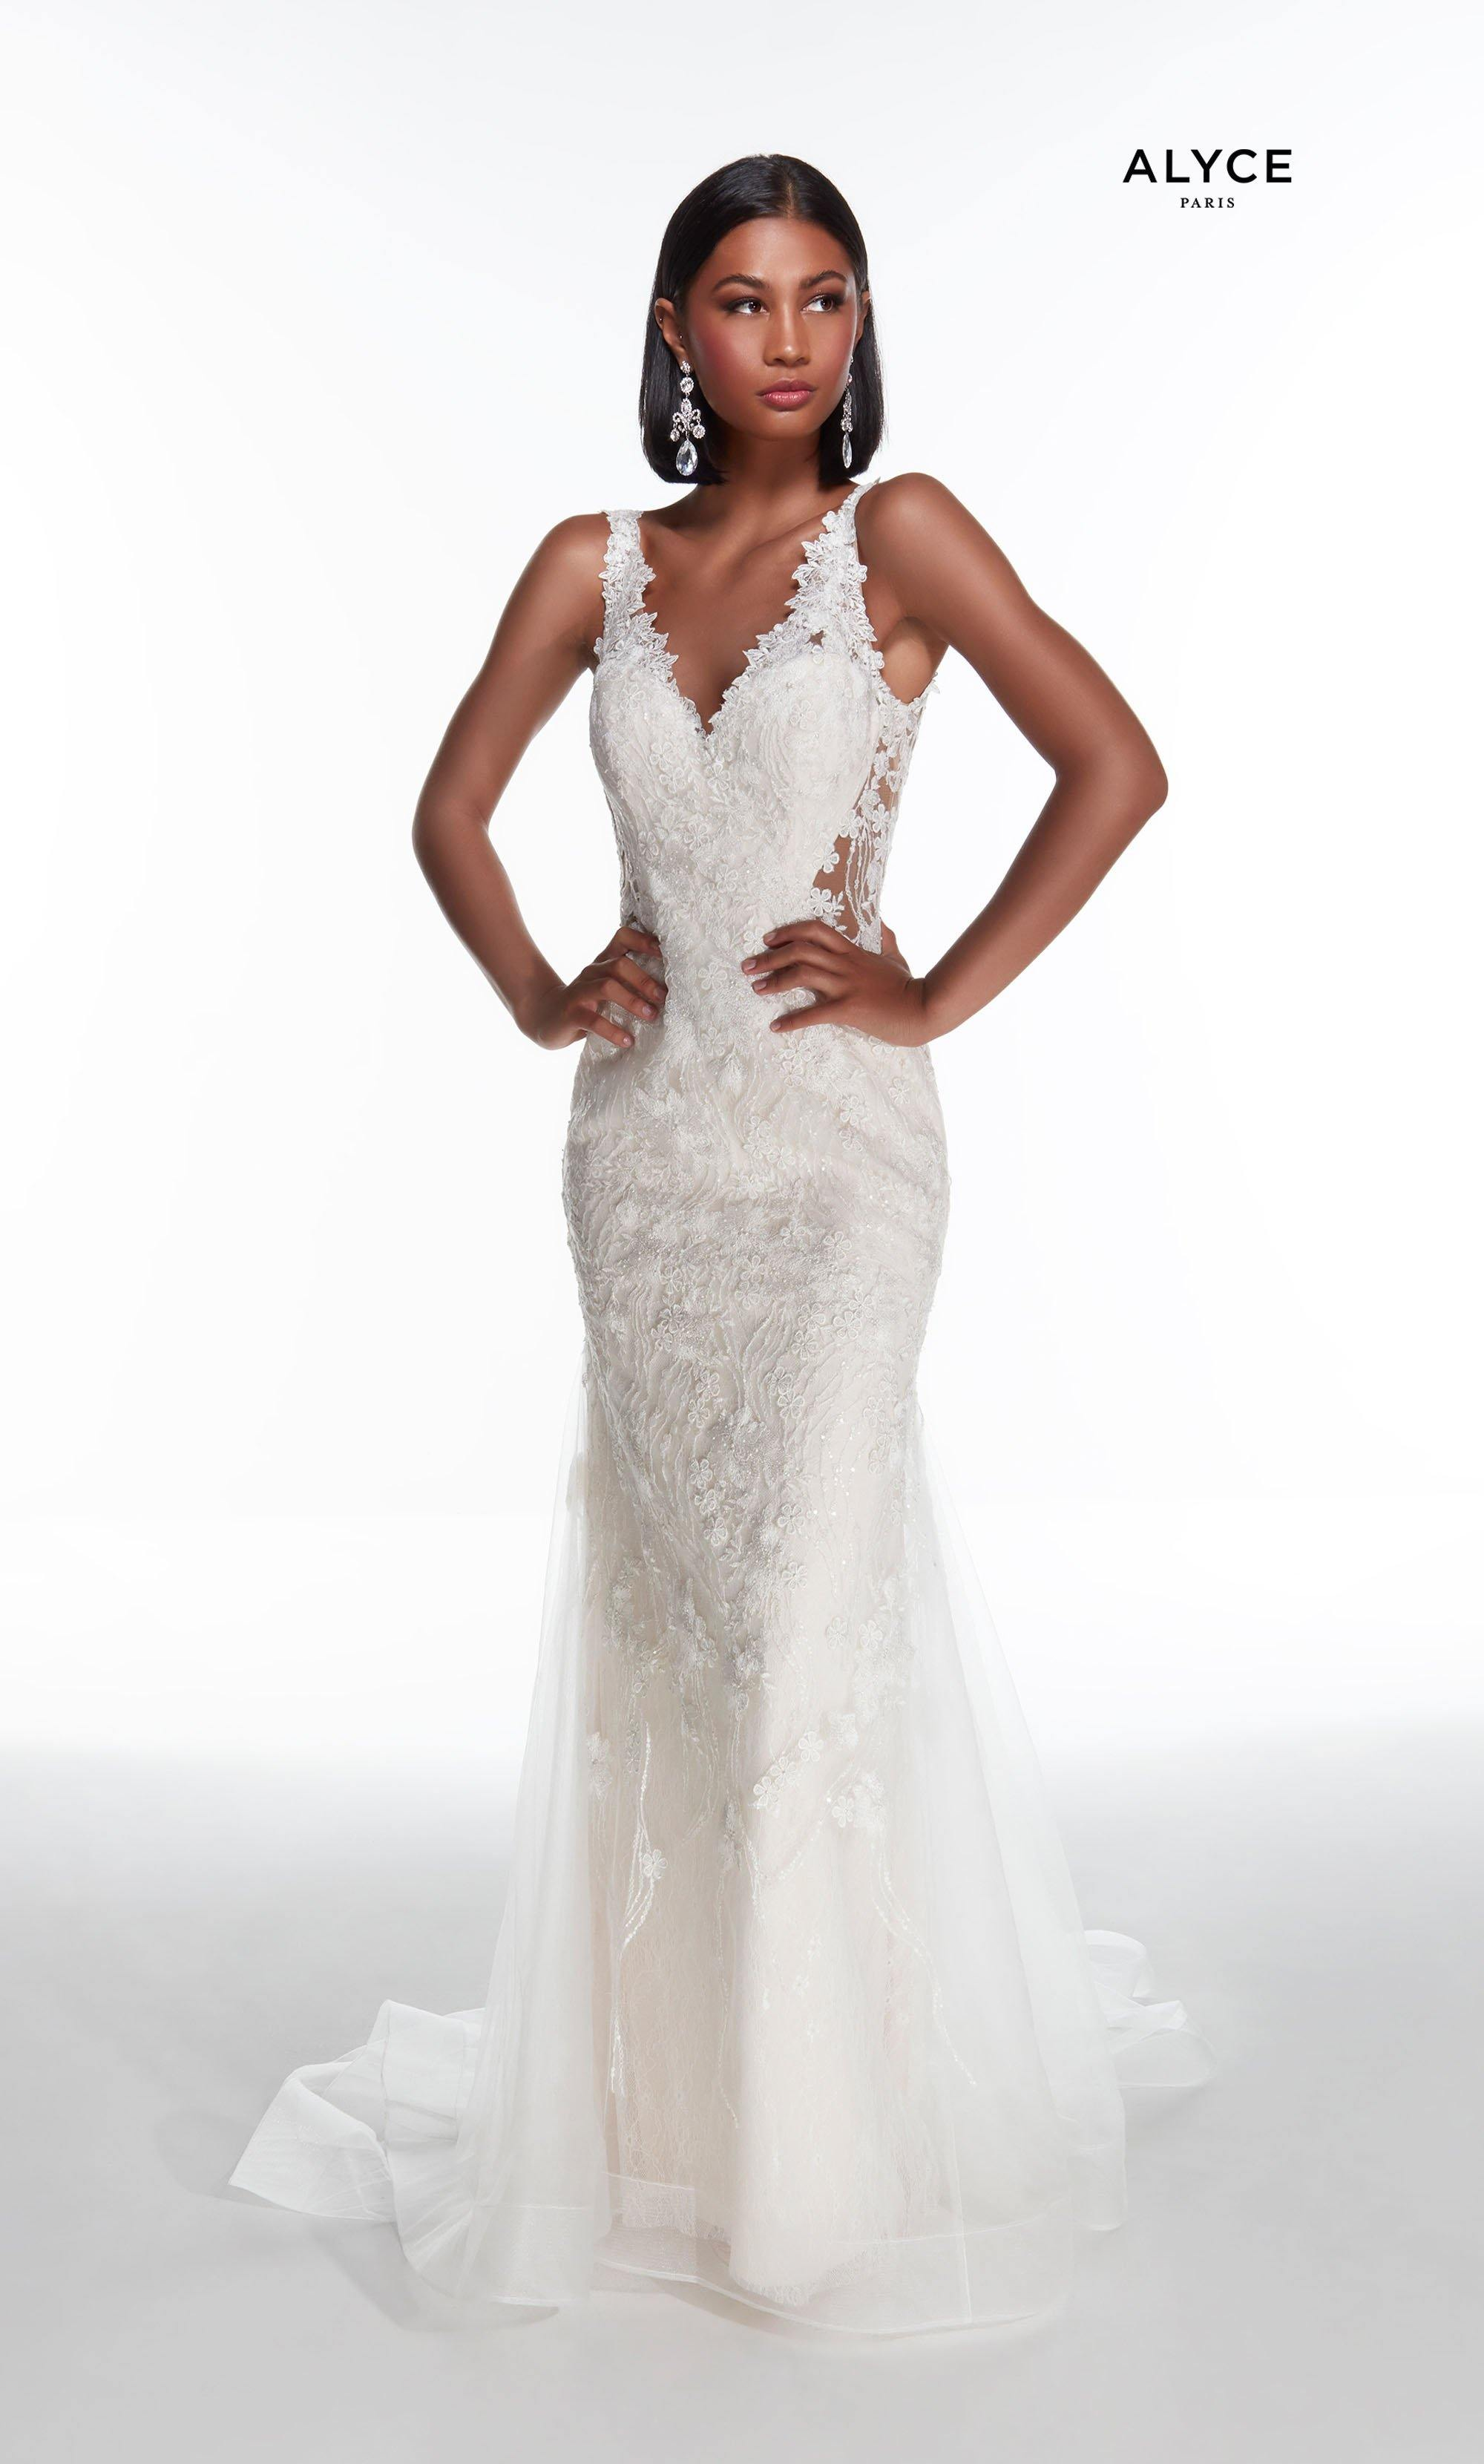 Diamond White - Blush lace wedding dress with a V neckline and illusion side cutouts